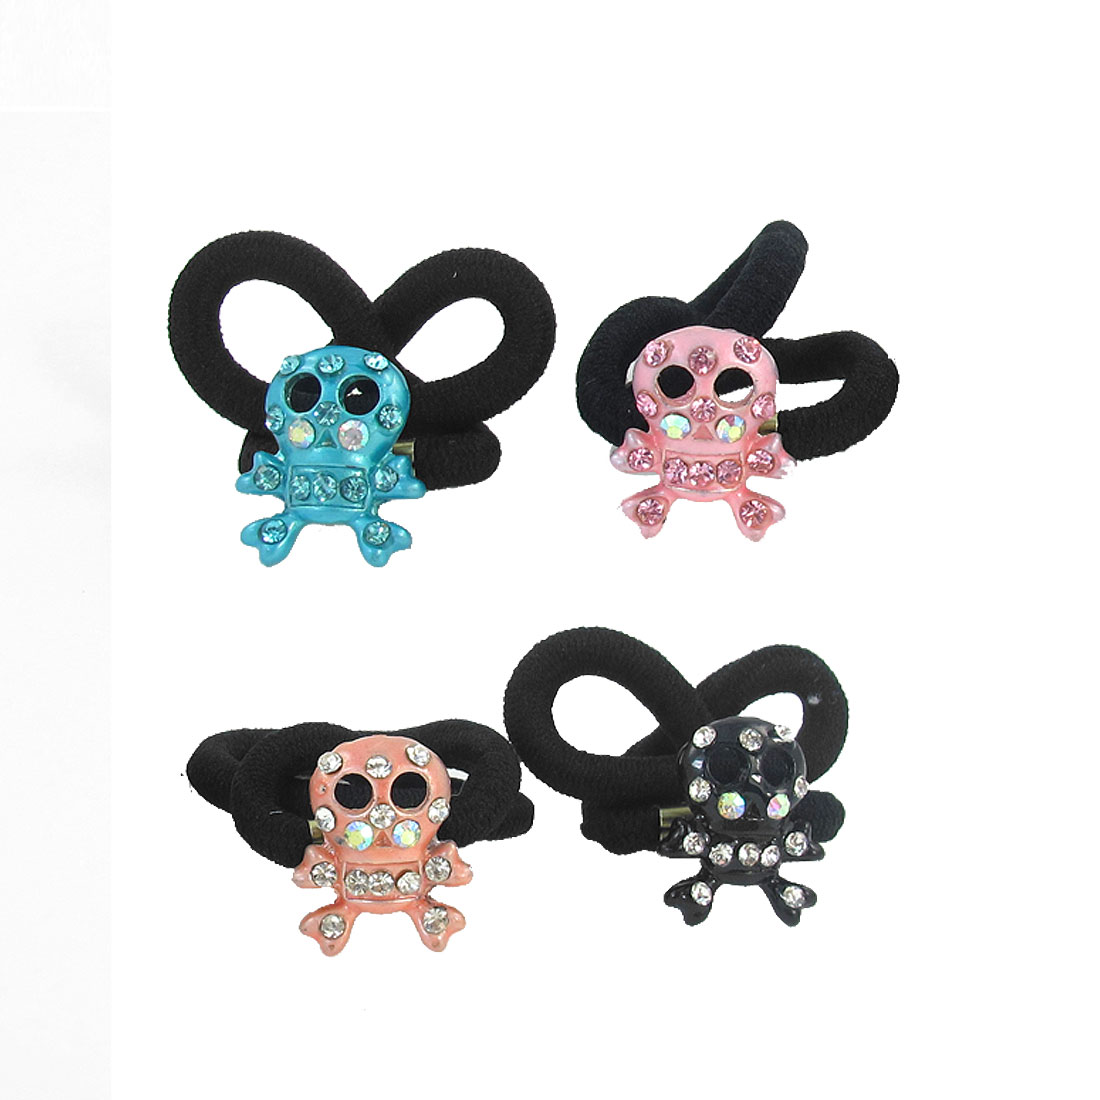 4 Pcs Kids Glittery Rhinestone Inlaid Skull Head Decor Elastic Rubber Hair Band Tie